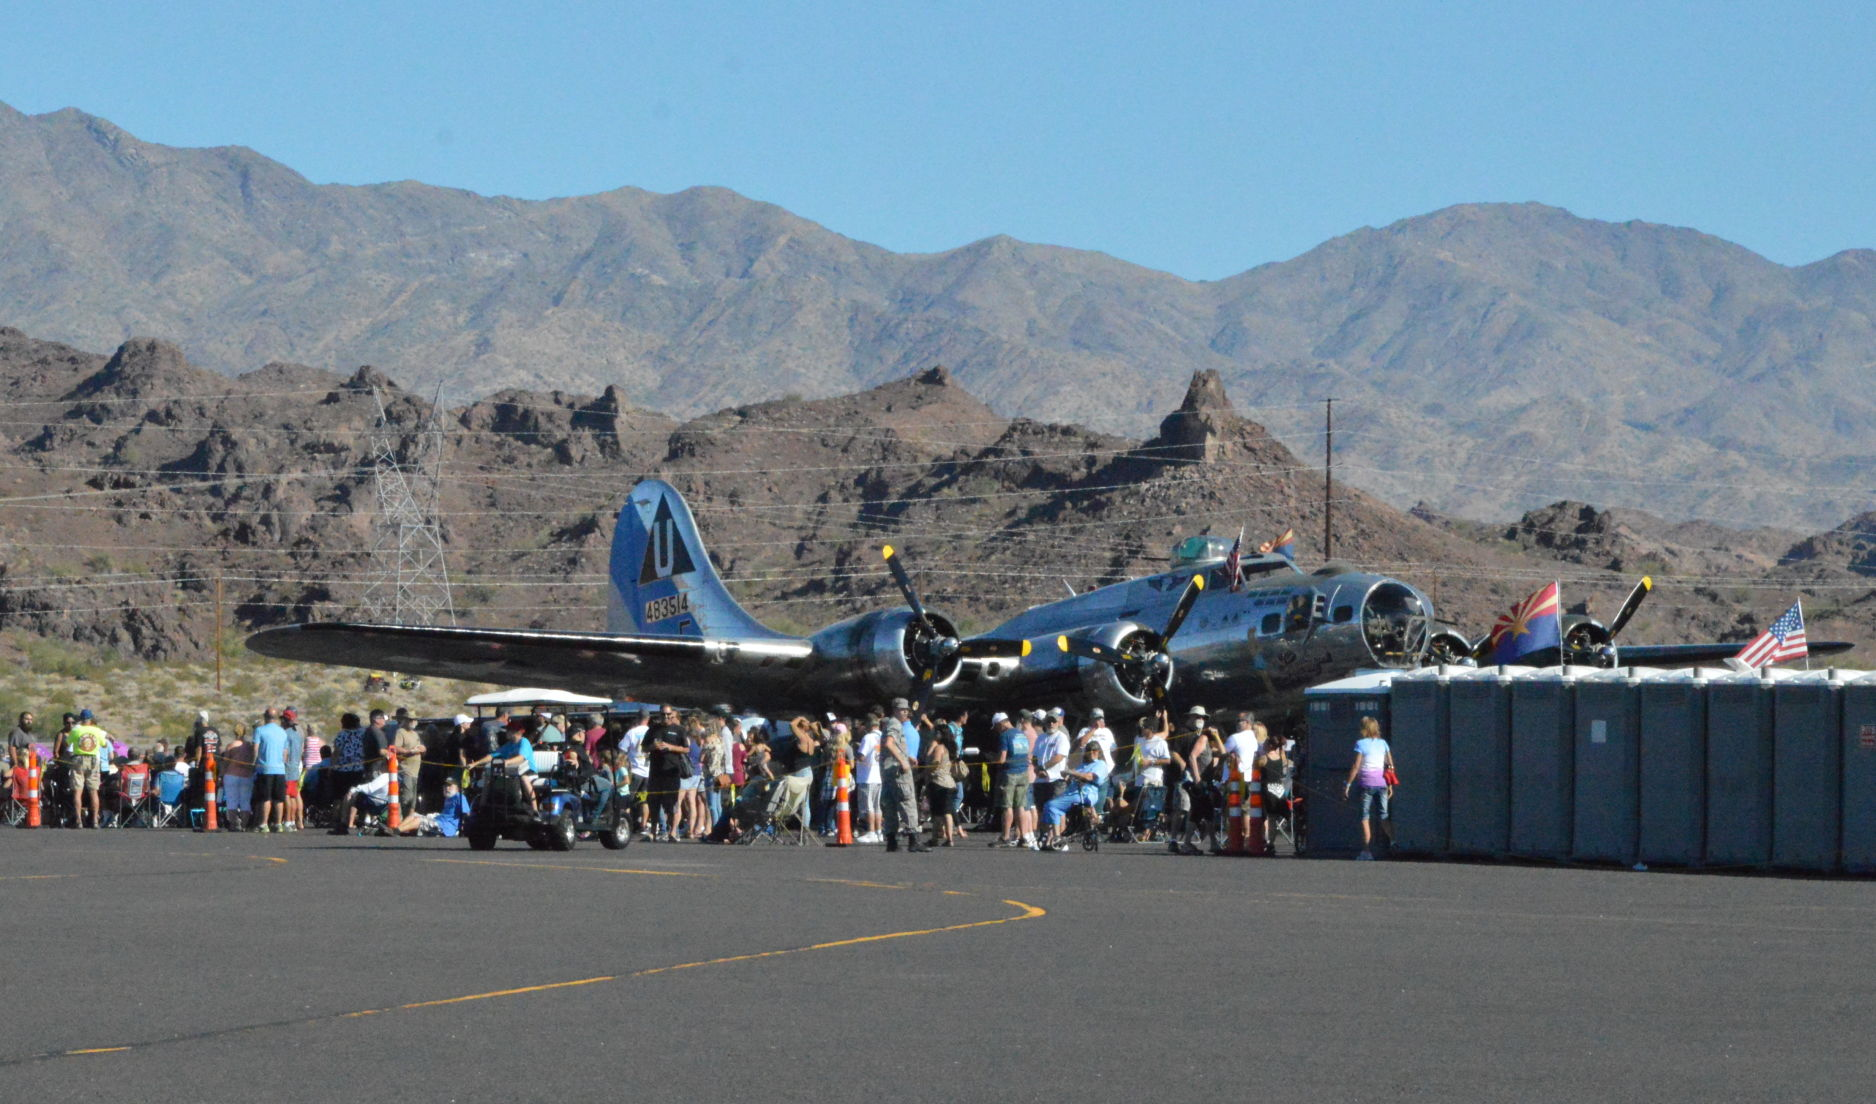 Remarkable Hangar Airshow At Lake Havasu Municipal Airport Airfest Was A Learning Experience Local News Stories Hangar 24 Airfest 2016 Hangar 24 Airfest Times dpreview Hangar 24 Airfest